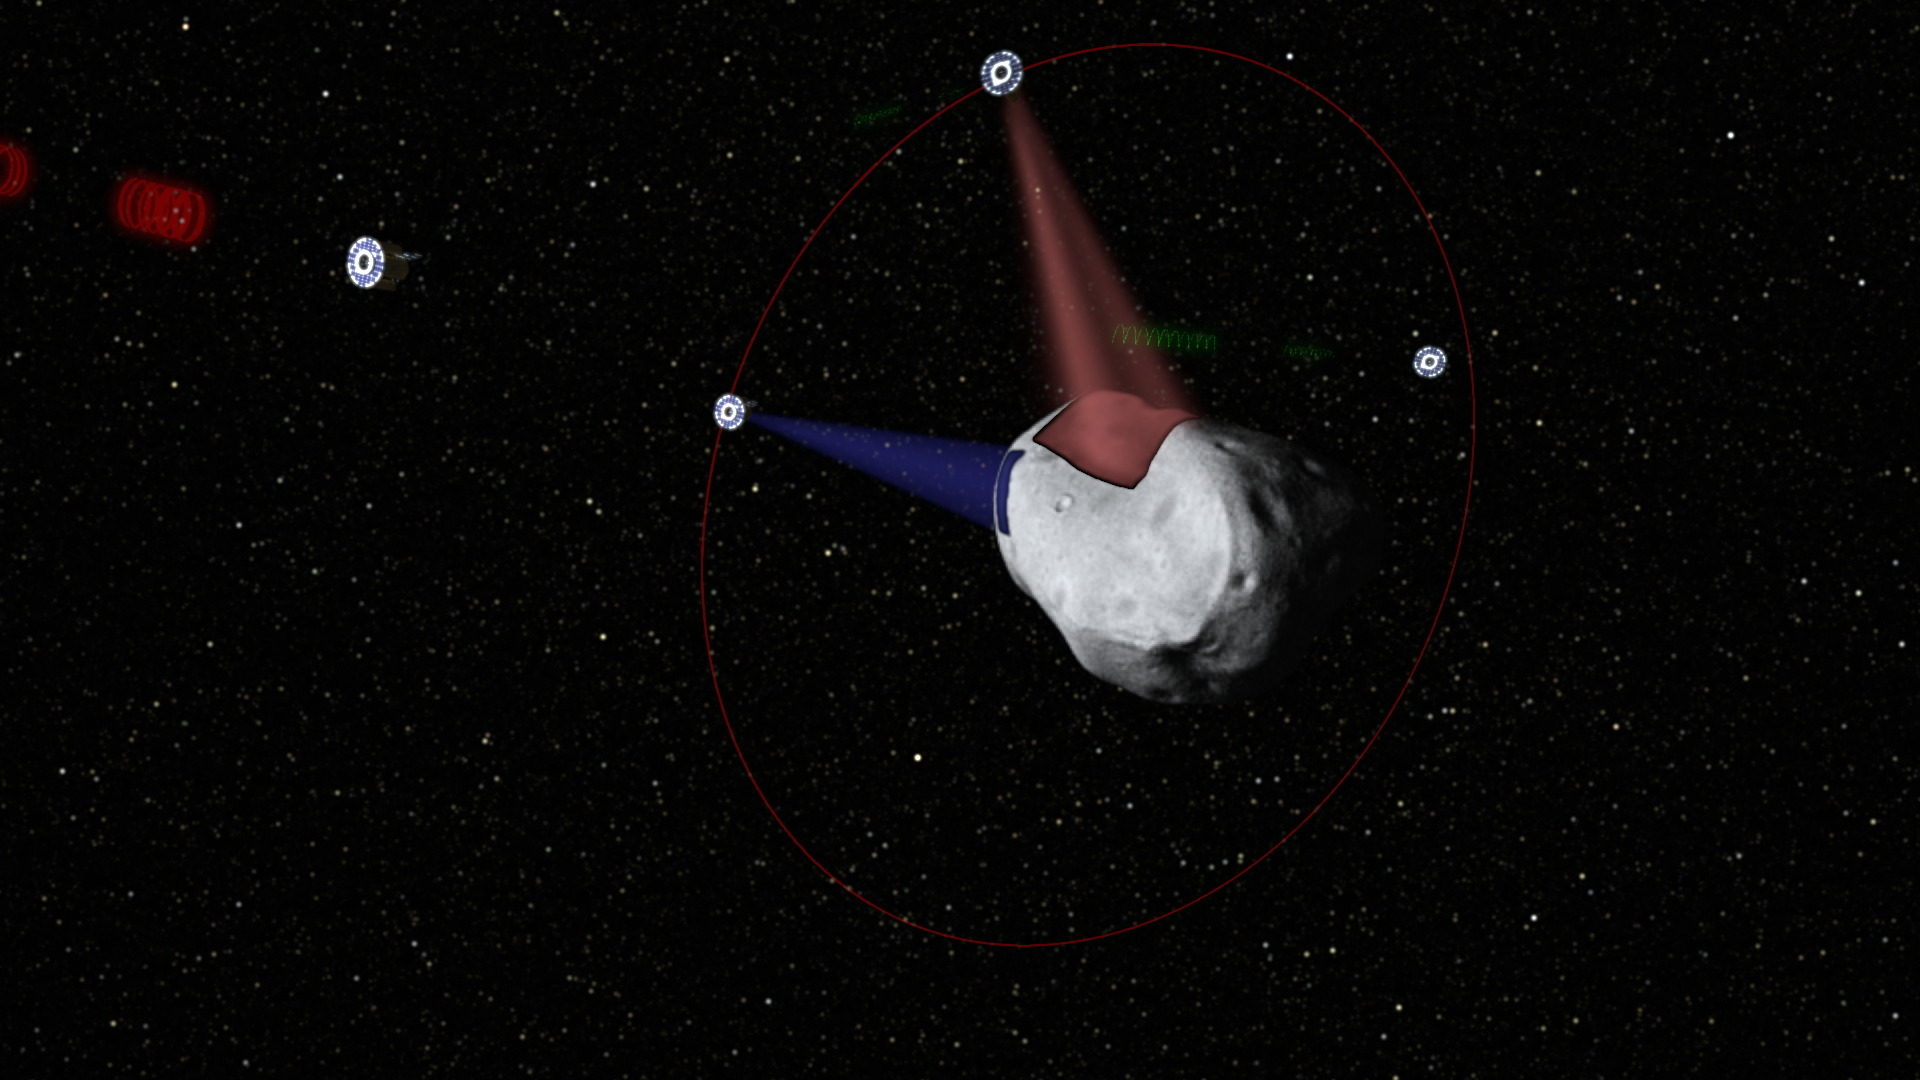 Asteroid Plans for Ship (page 4) - Pics about space